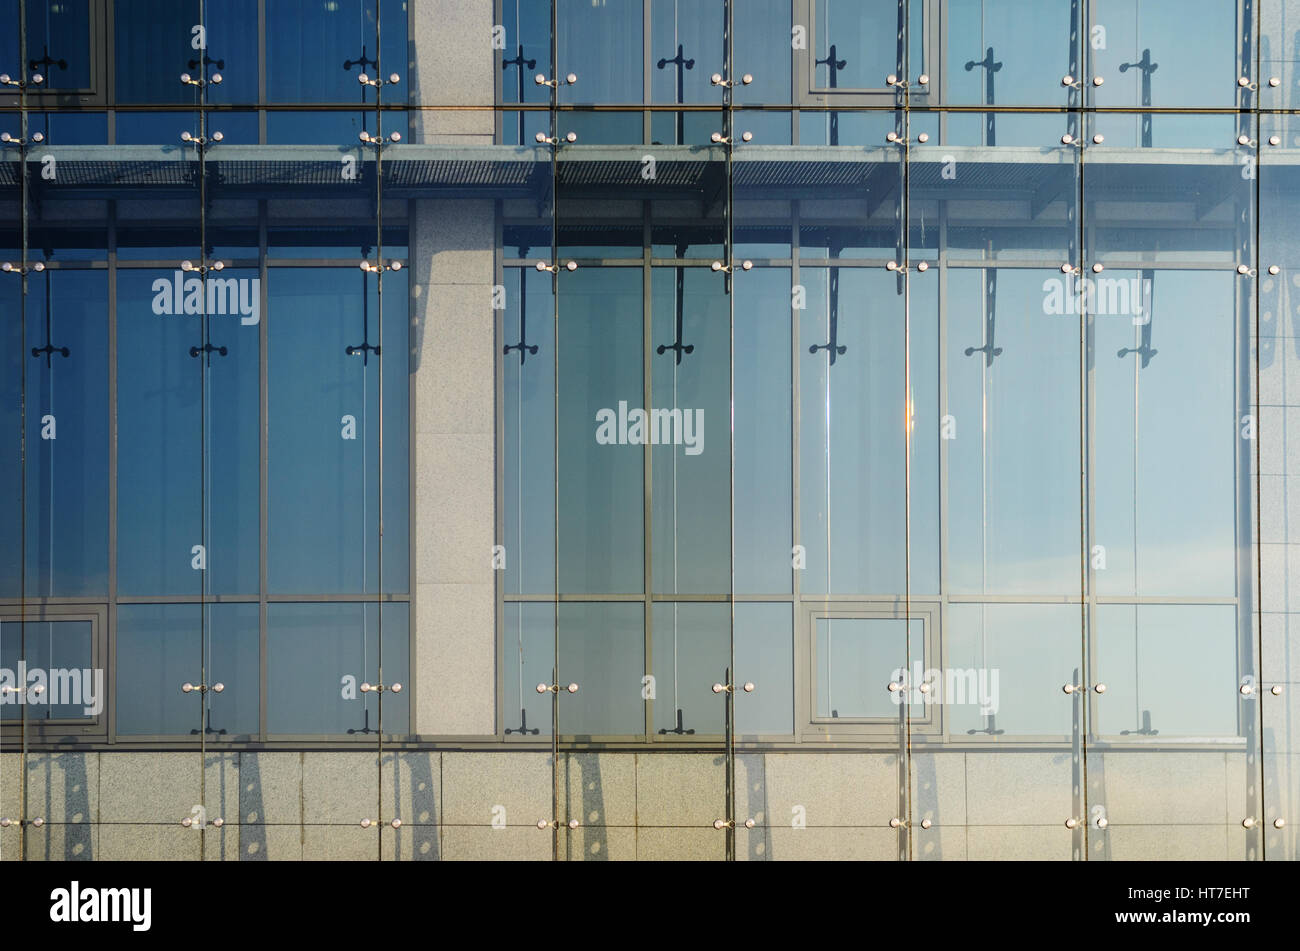 Spider Curtain Wall System : Glass curtain walls spider facade fixing system elements